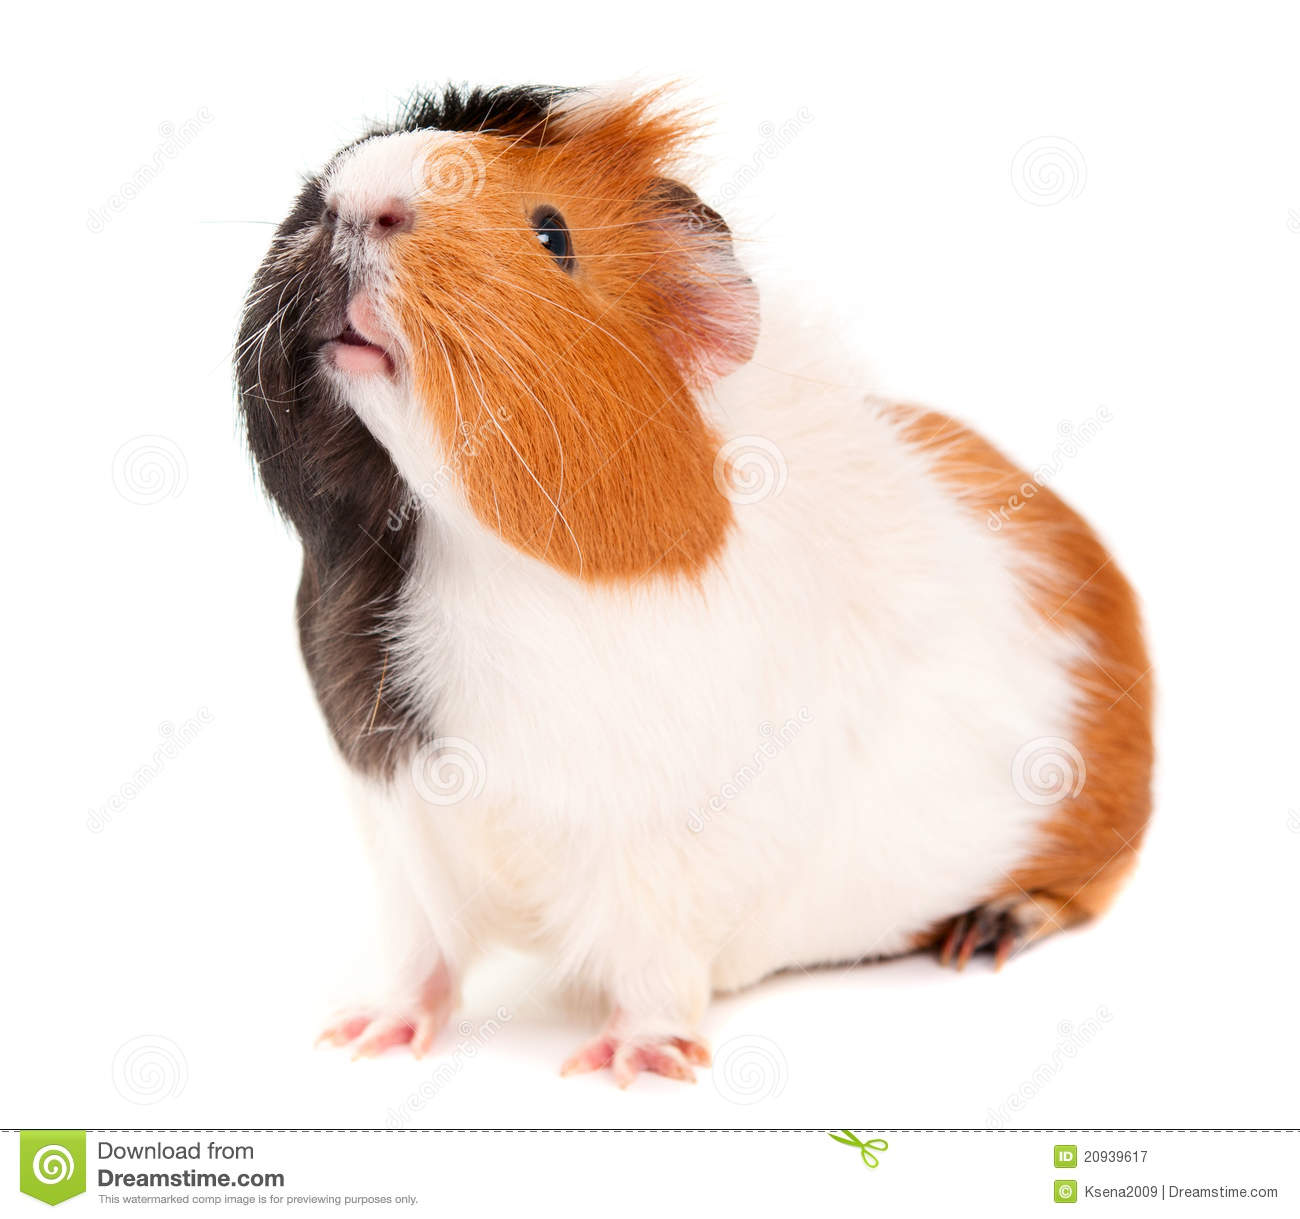 Guinea pig royalty free stock photography image 20939617 for Guinea pig pictures free